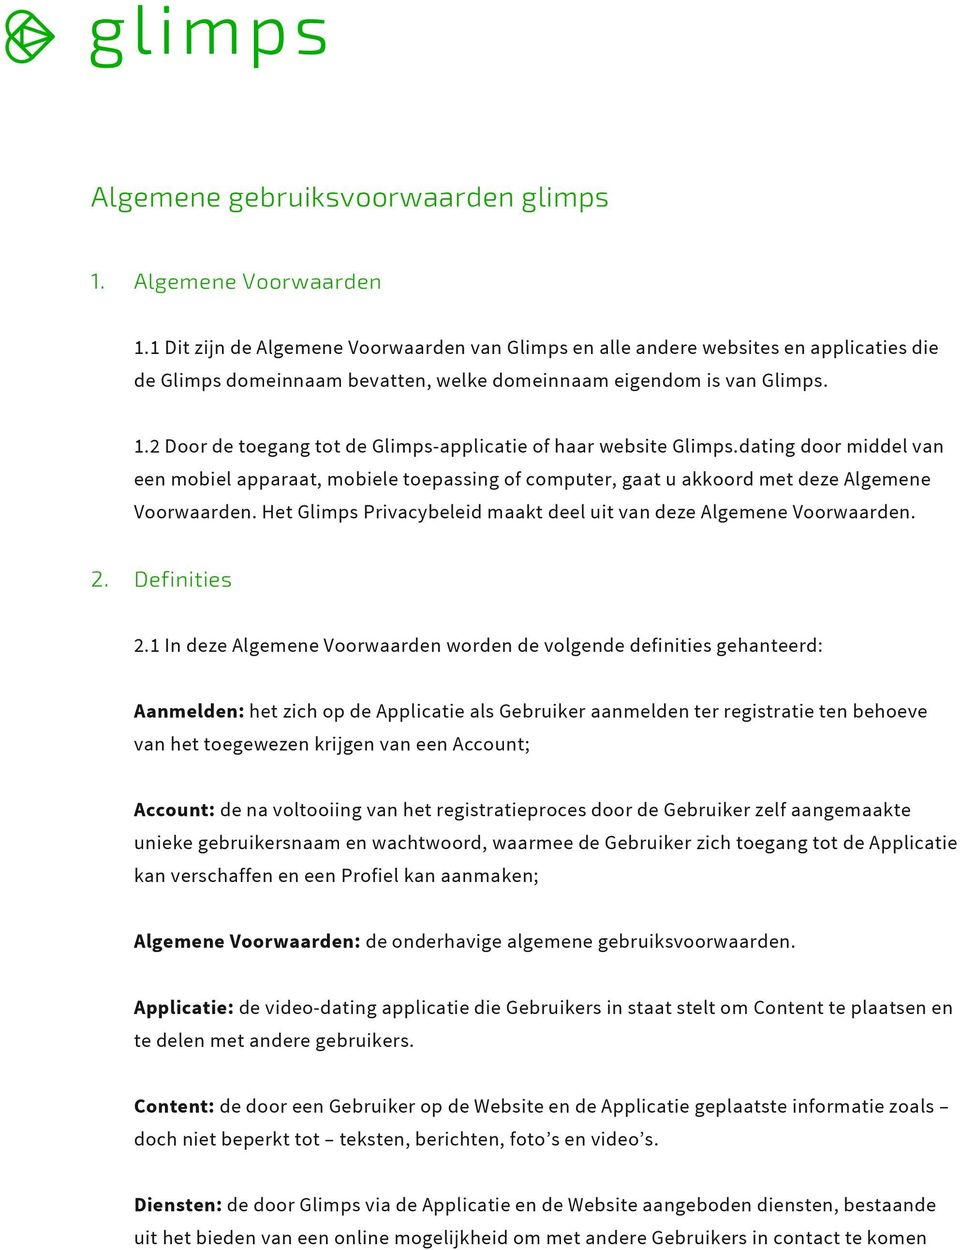 2 Door de toegang tot de Glimps-applicatie of haar website Glimps.dating door middel van een mobiel apparaat, mobiele toepassing of computer, gaat u akkoord met deze Algemene Voorwaarden.